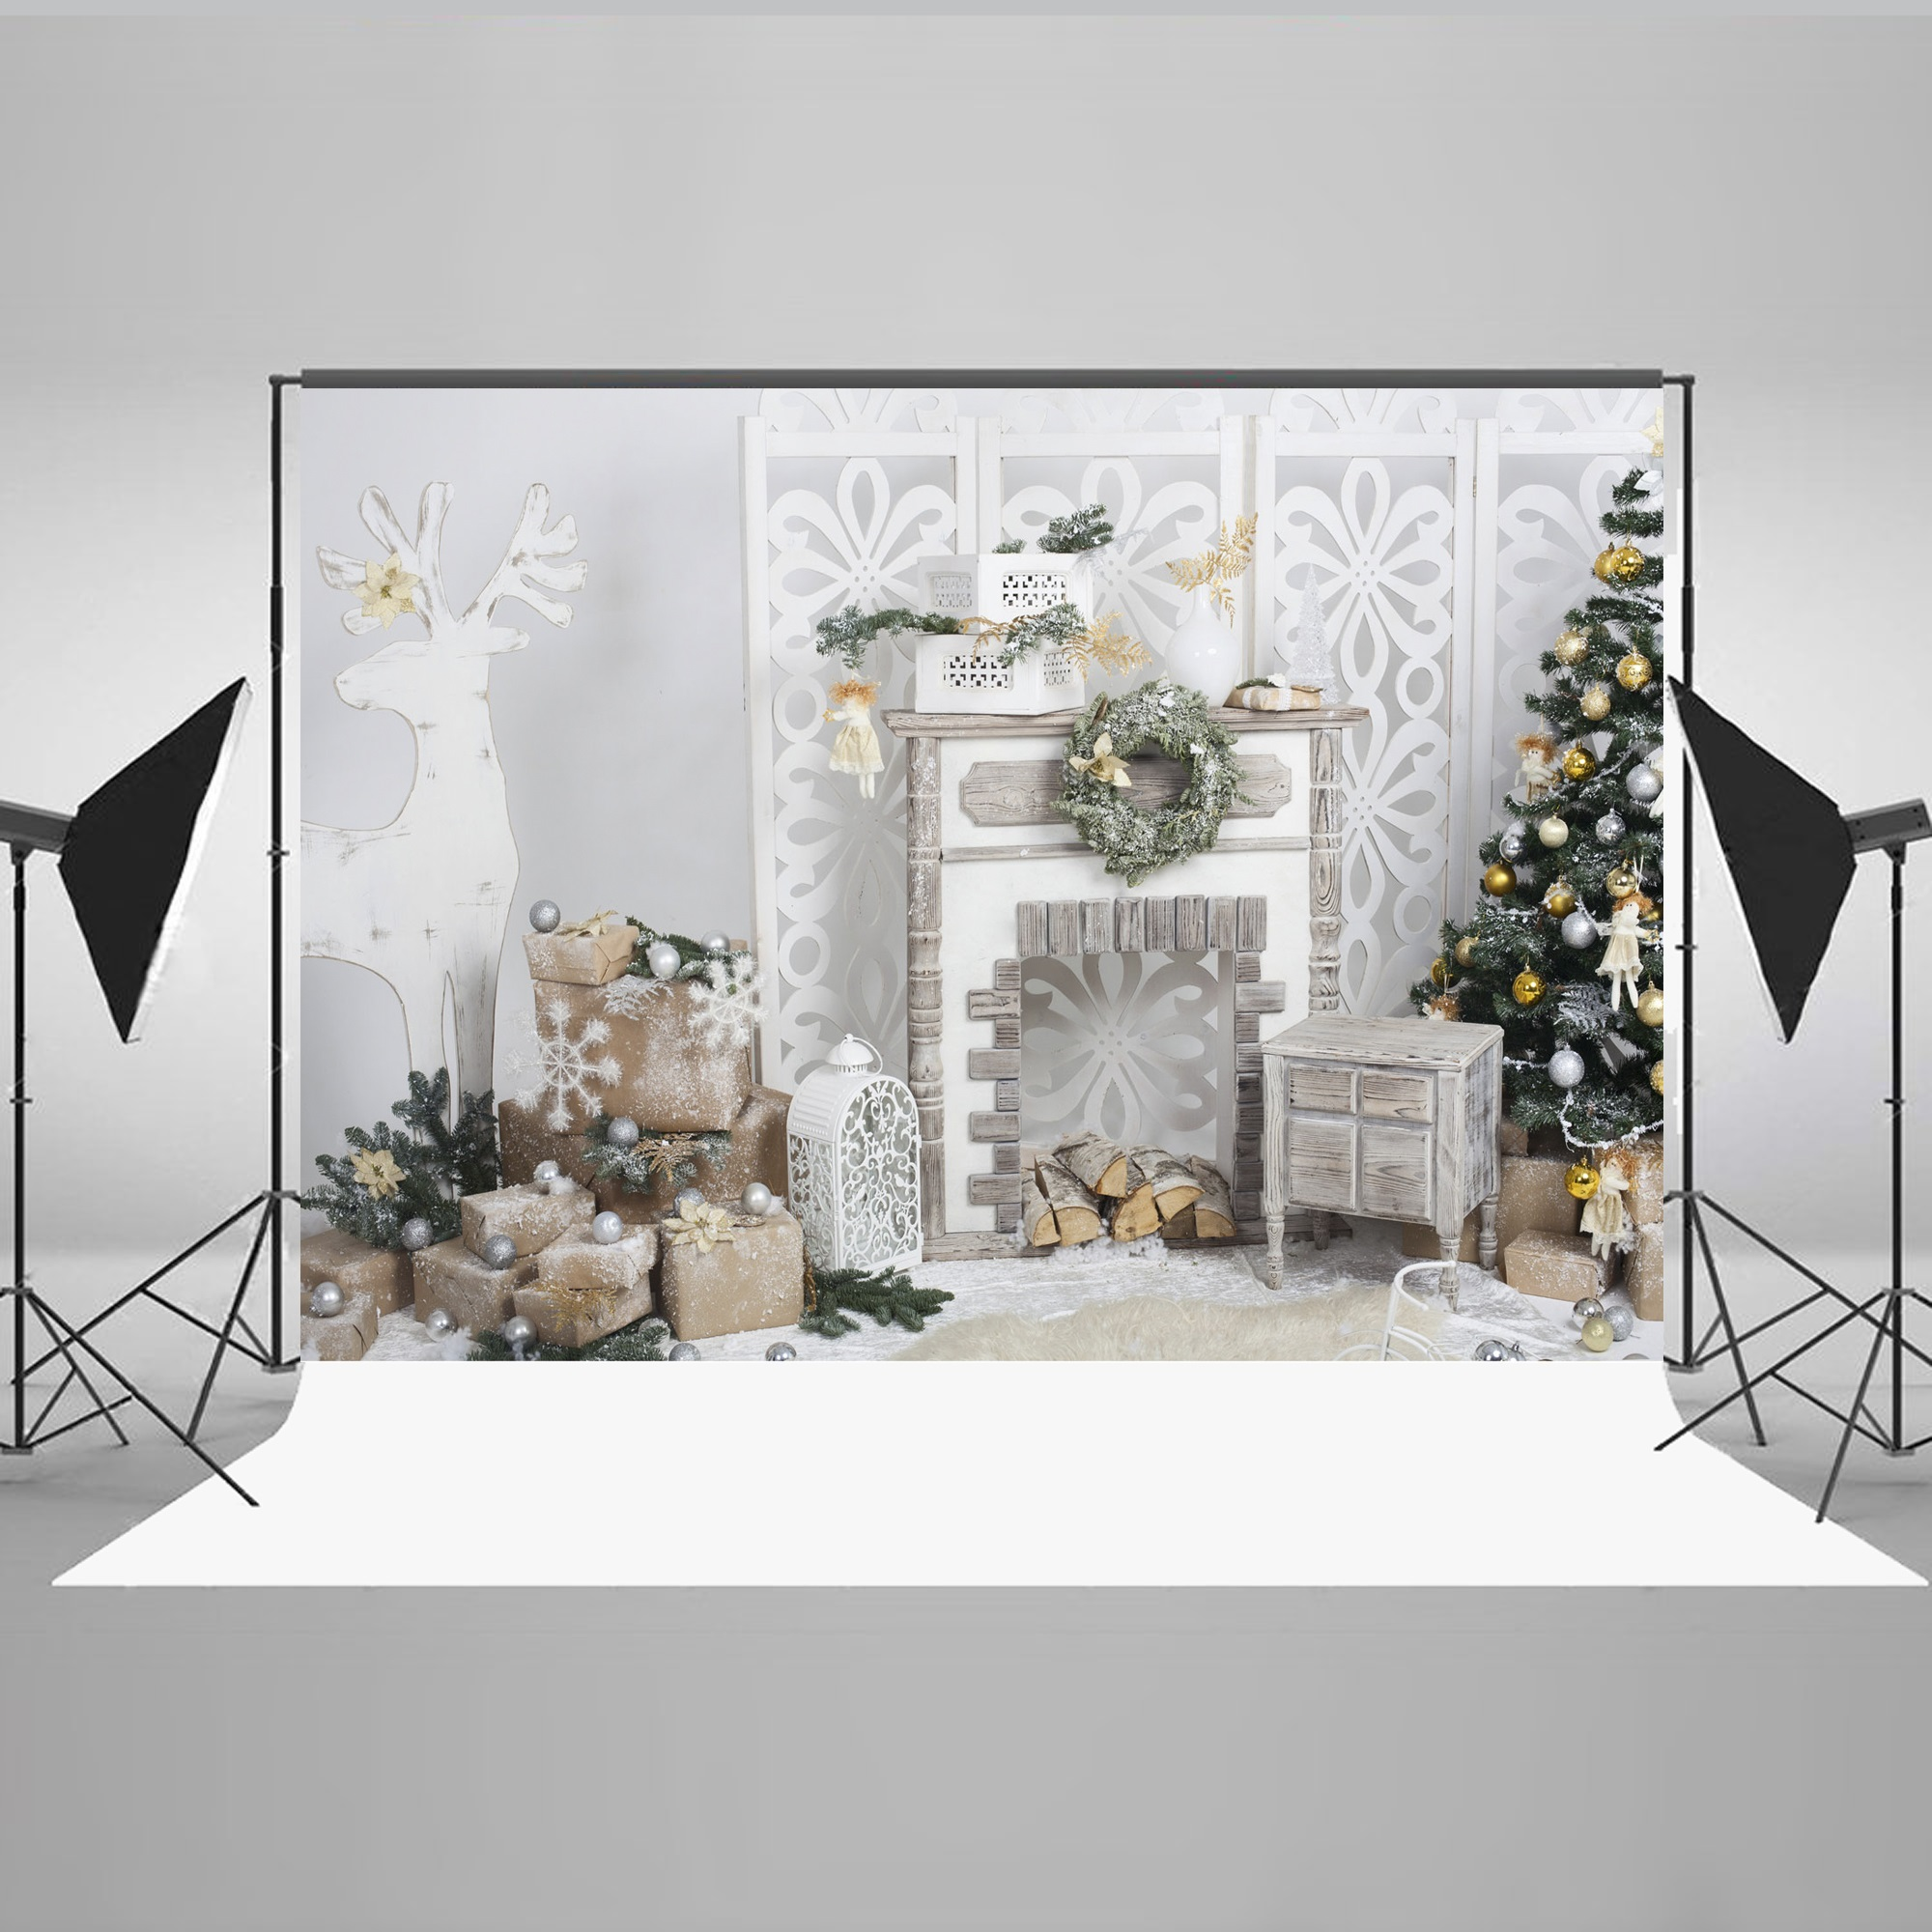 NK HOME Studio Photo Video Photography Backdrops 7x5ft Christmas Great Room Printed Vinyl Fabric Background Screen Props